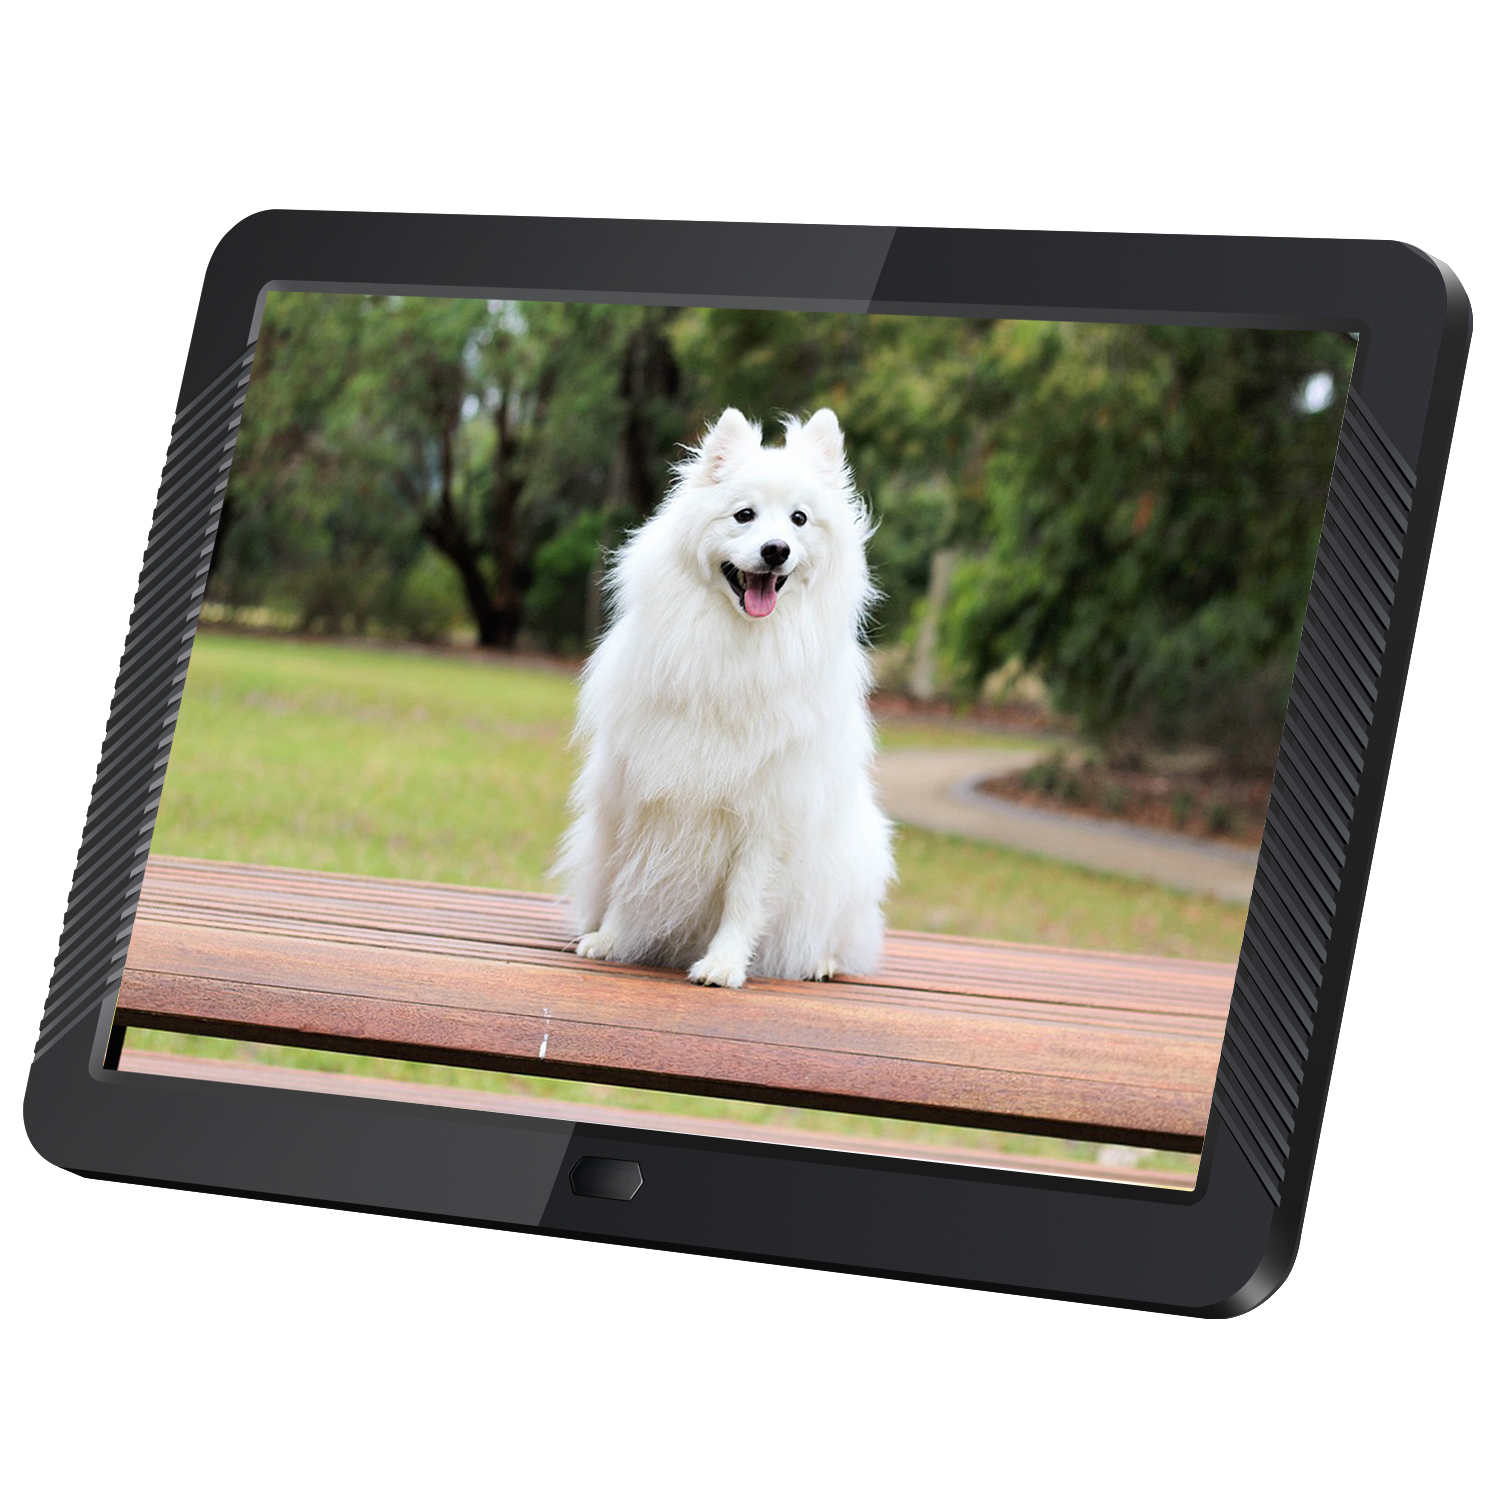 auto slideshow 8 inch white IPS display hd digital picture album 1280*800